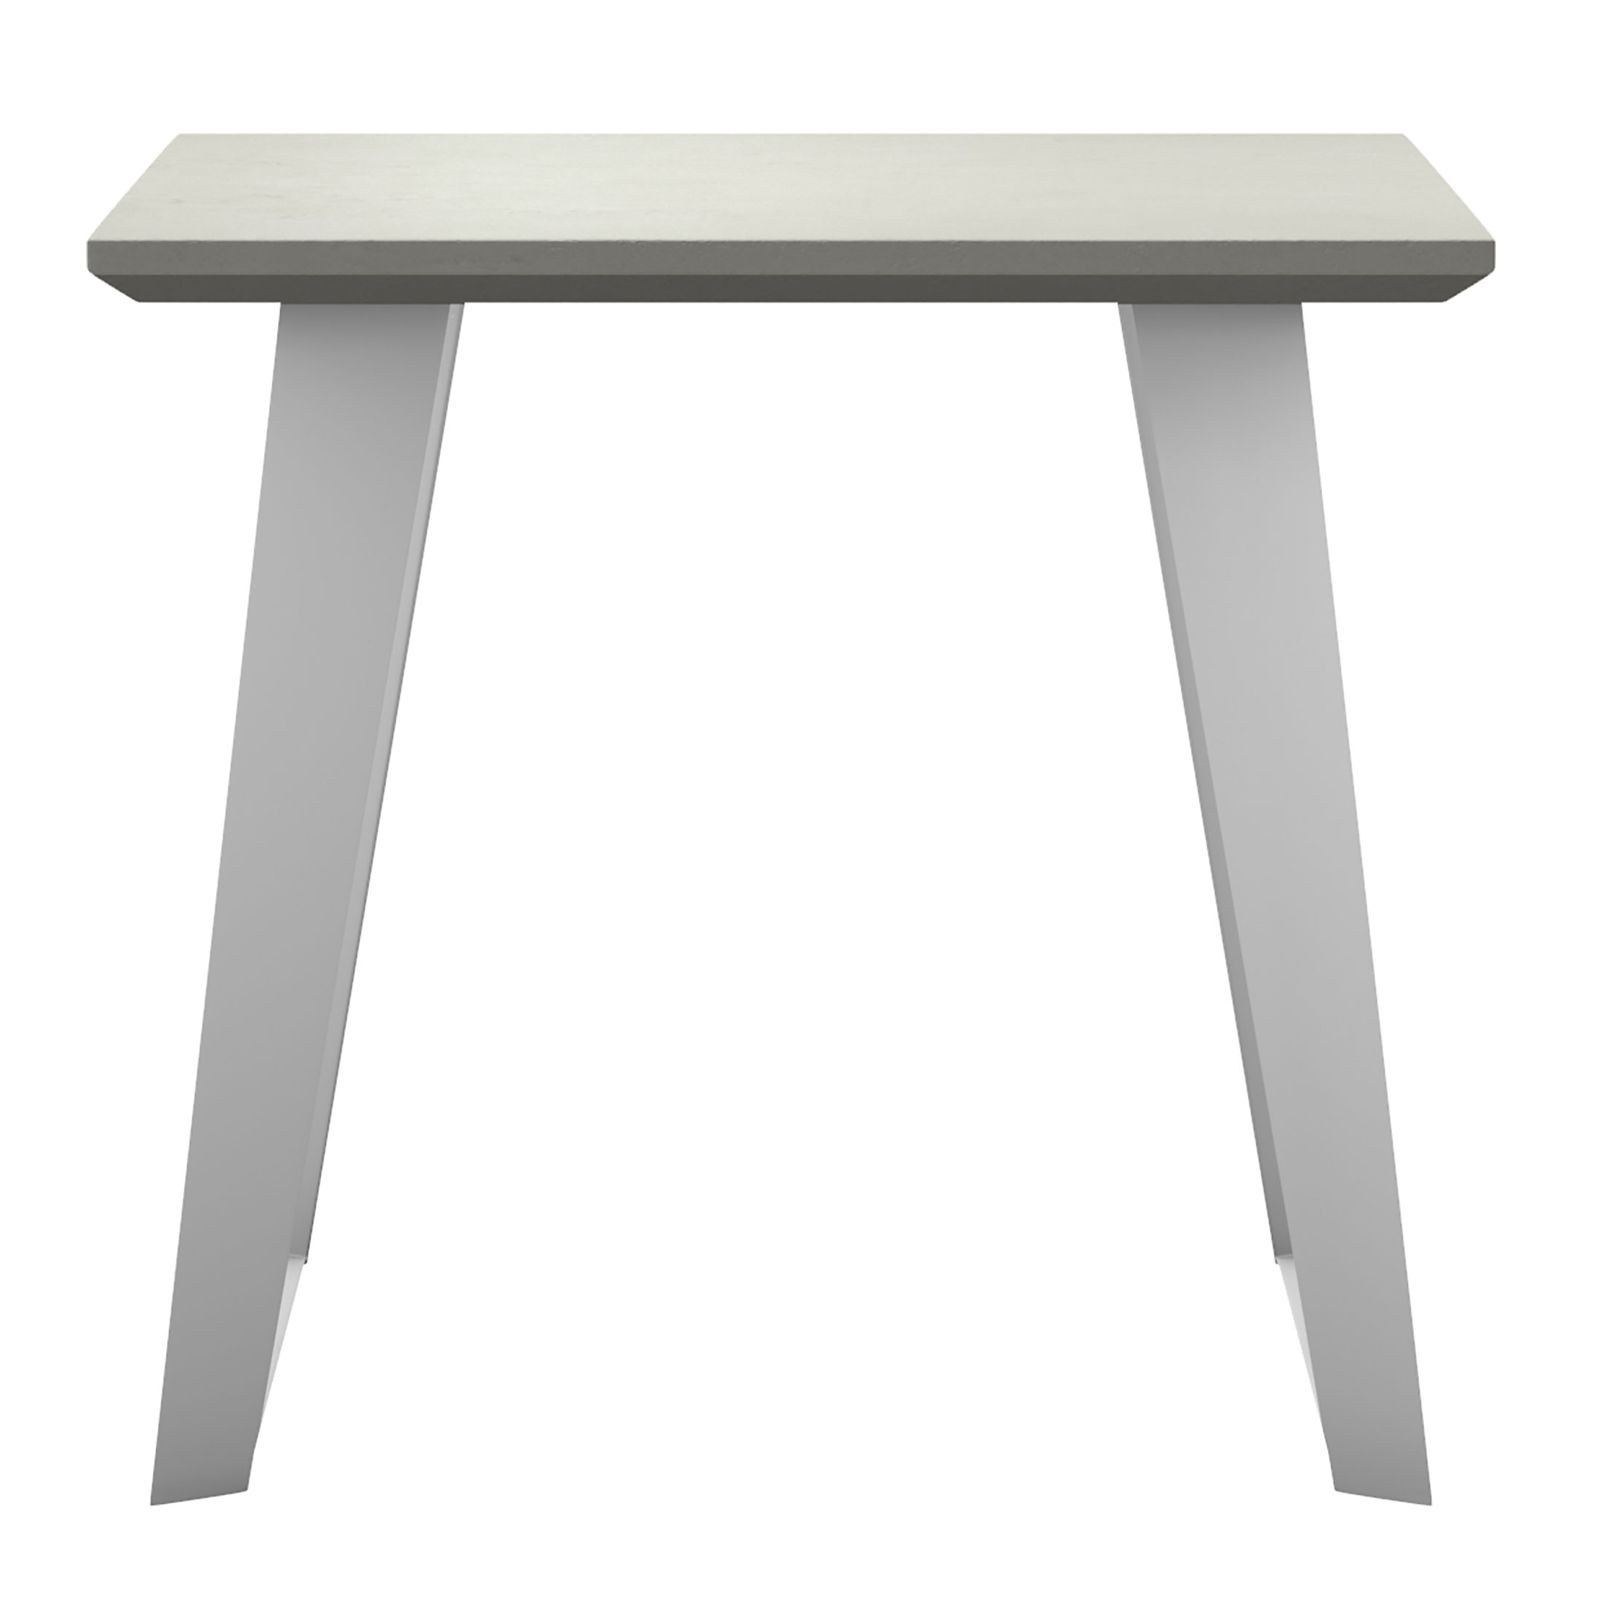 amsterdam outdoor side table modloft modern tables cressina concrete white sand painted base accent coffee and end pier one dining room porch patio furniture baroque half moon